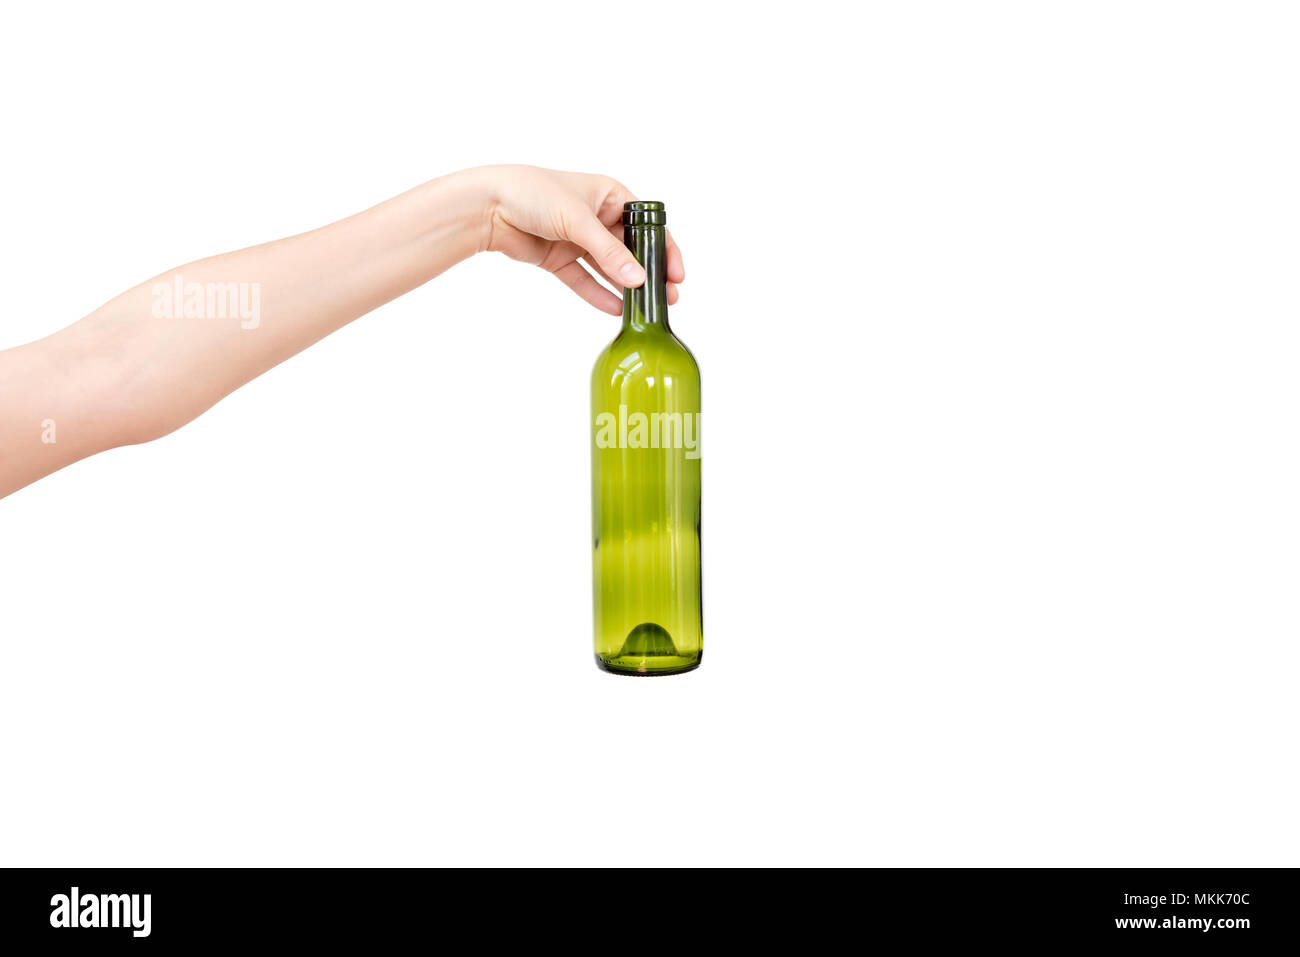 Female hand holding empty glass bottle isolated on white. Recyclable waste. Recycling, reuse, garbage disposal, resources, environment and ecology con - Stock Image